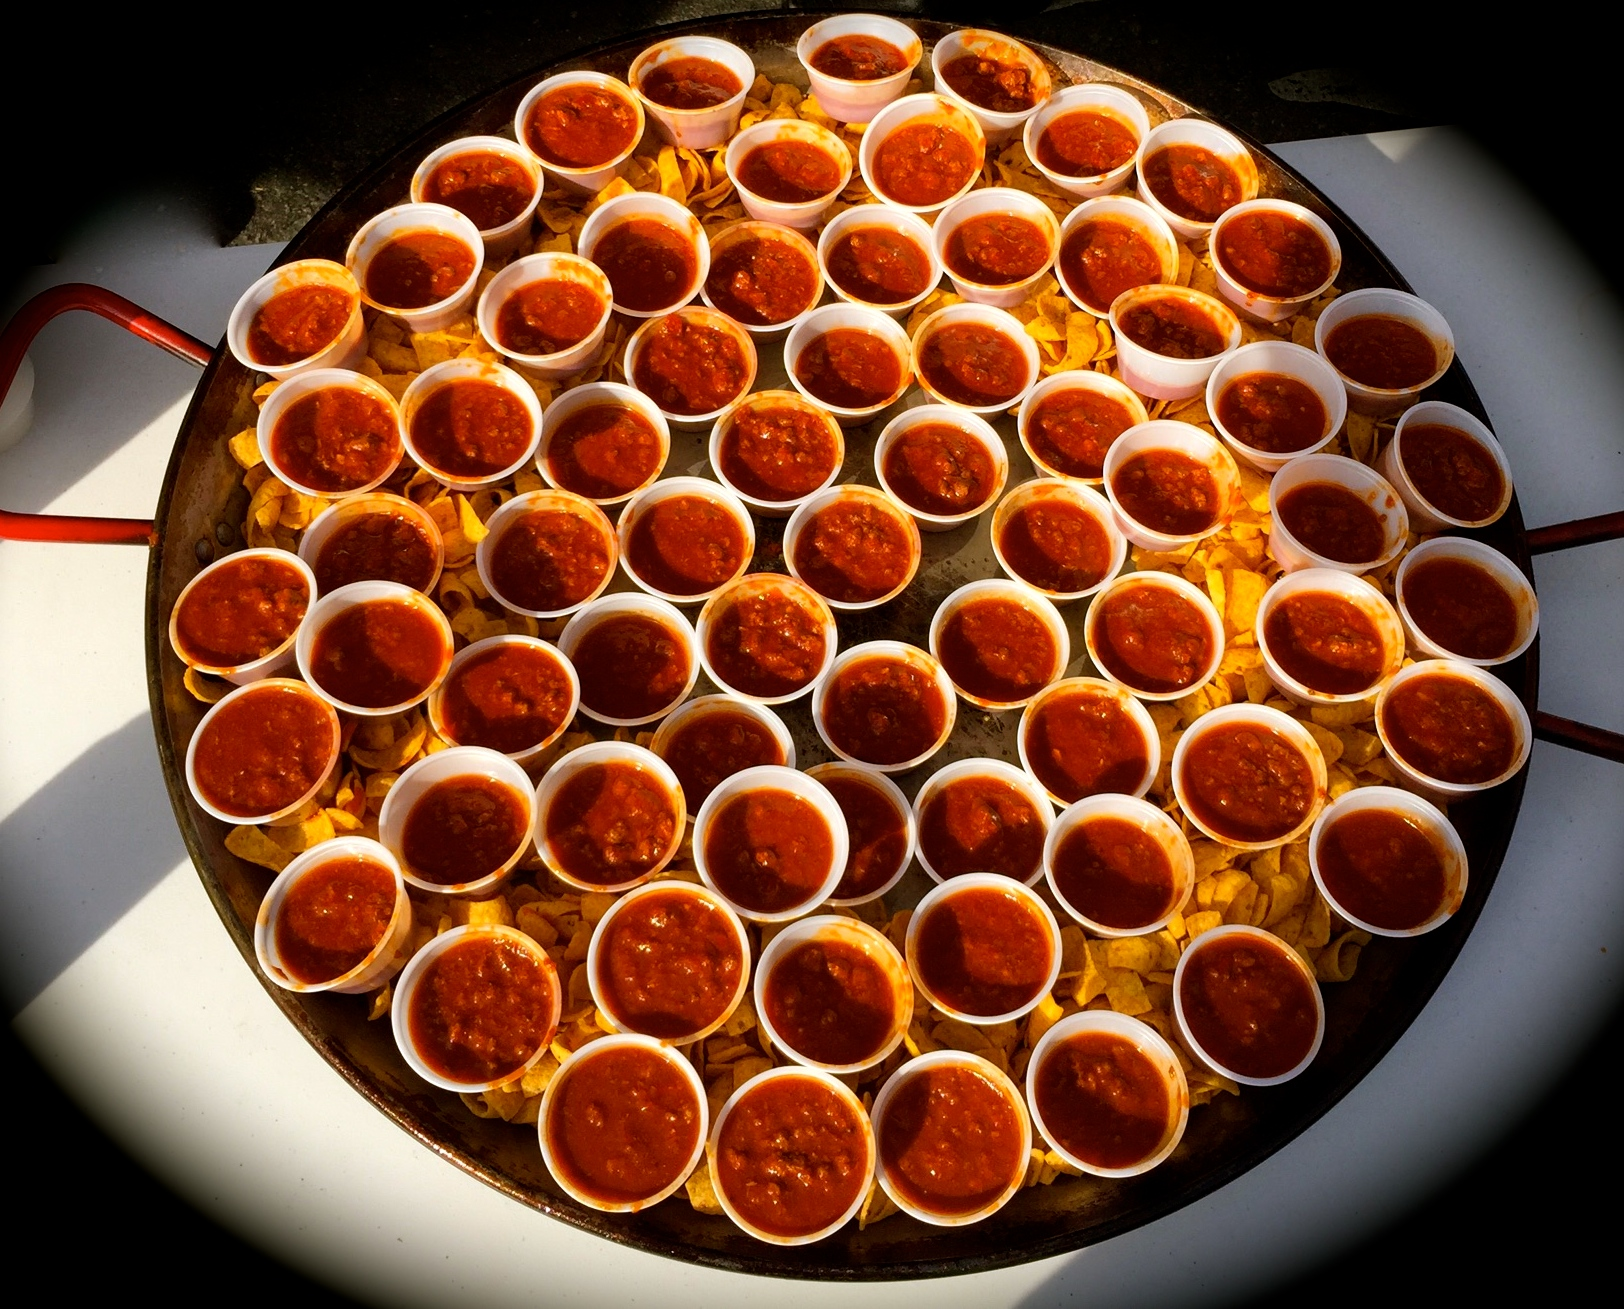 Thimbles full of chili served in the paella pan